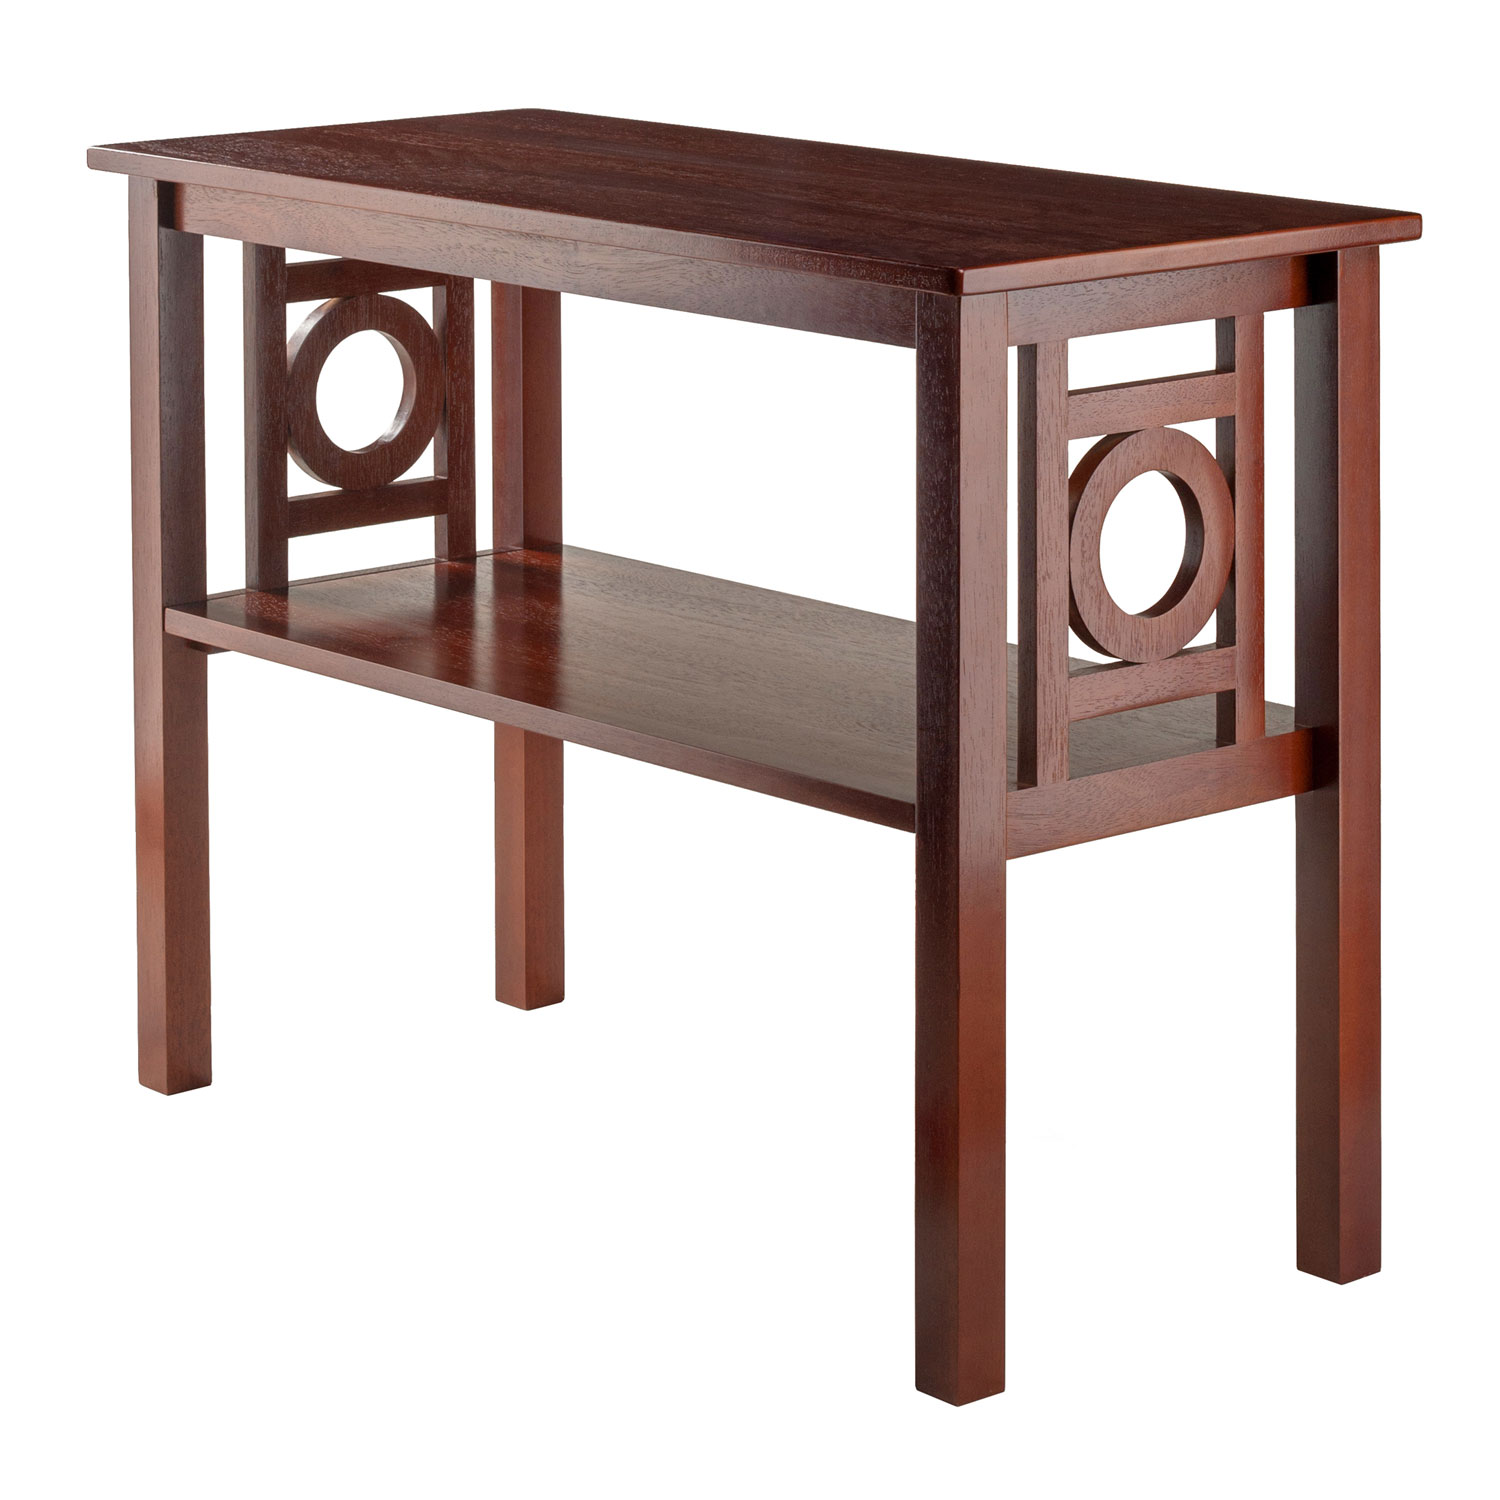 winsome wood ollie console table walnut bellacor accent hover zoom marble top coffee worlds away furniture bar height for small space nate berkus gold waterproof outdoor chair